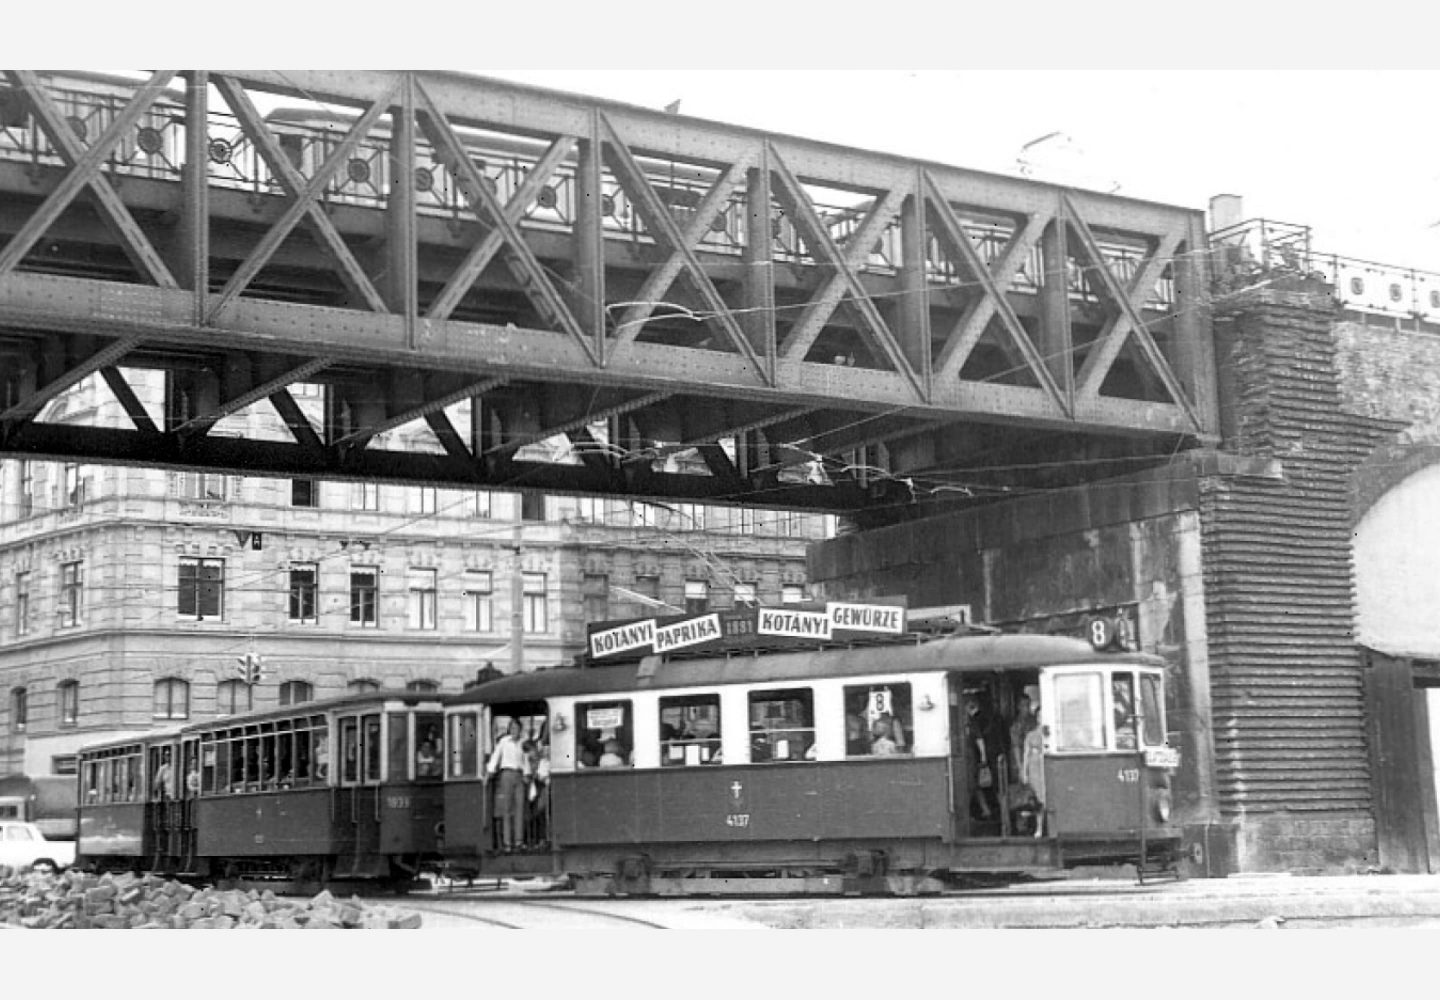 A tram in Vienna with Kotányi advertising from 1957.